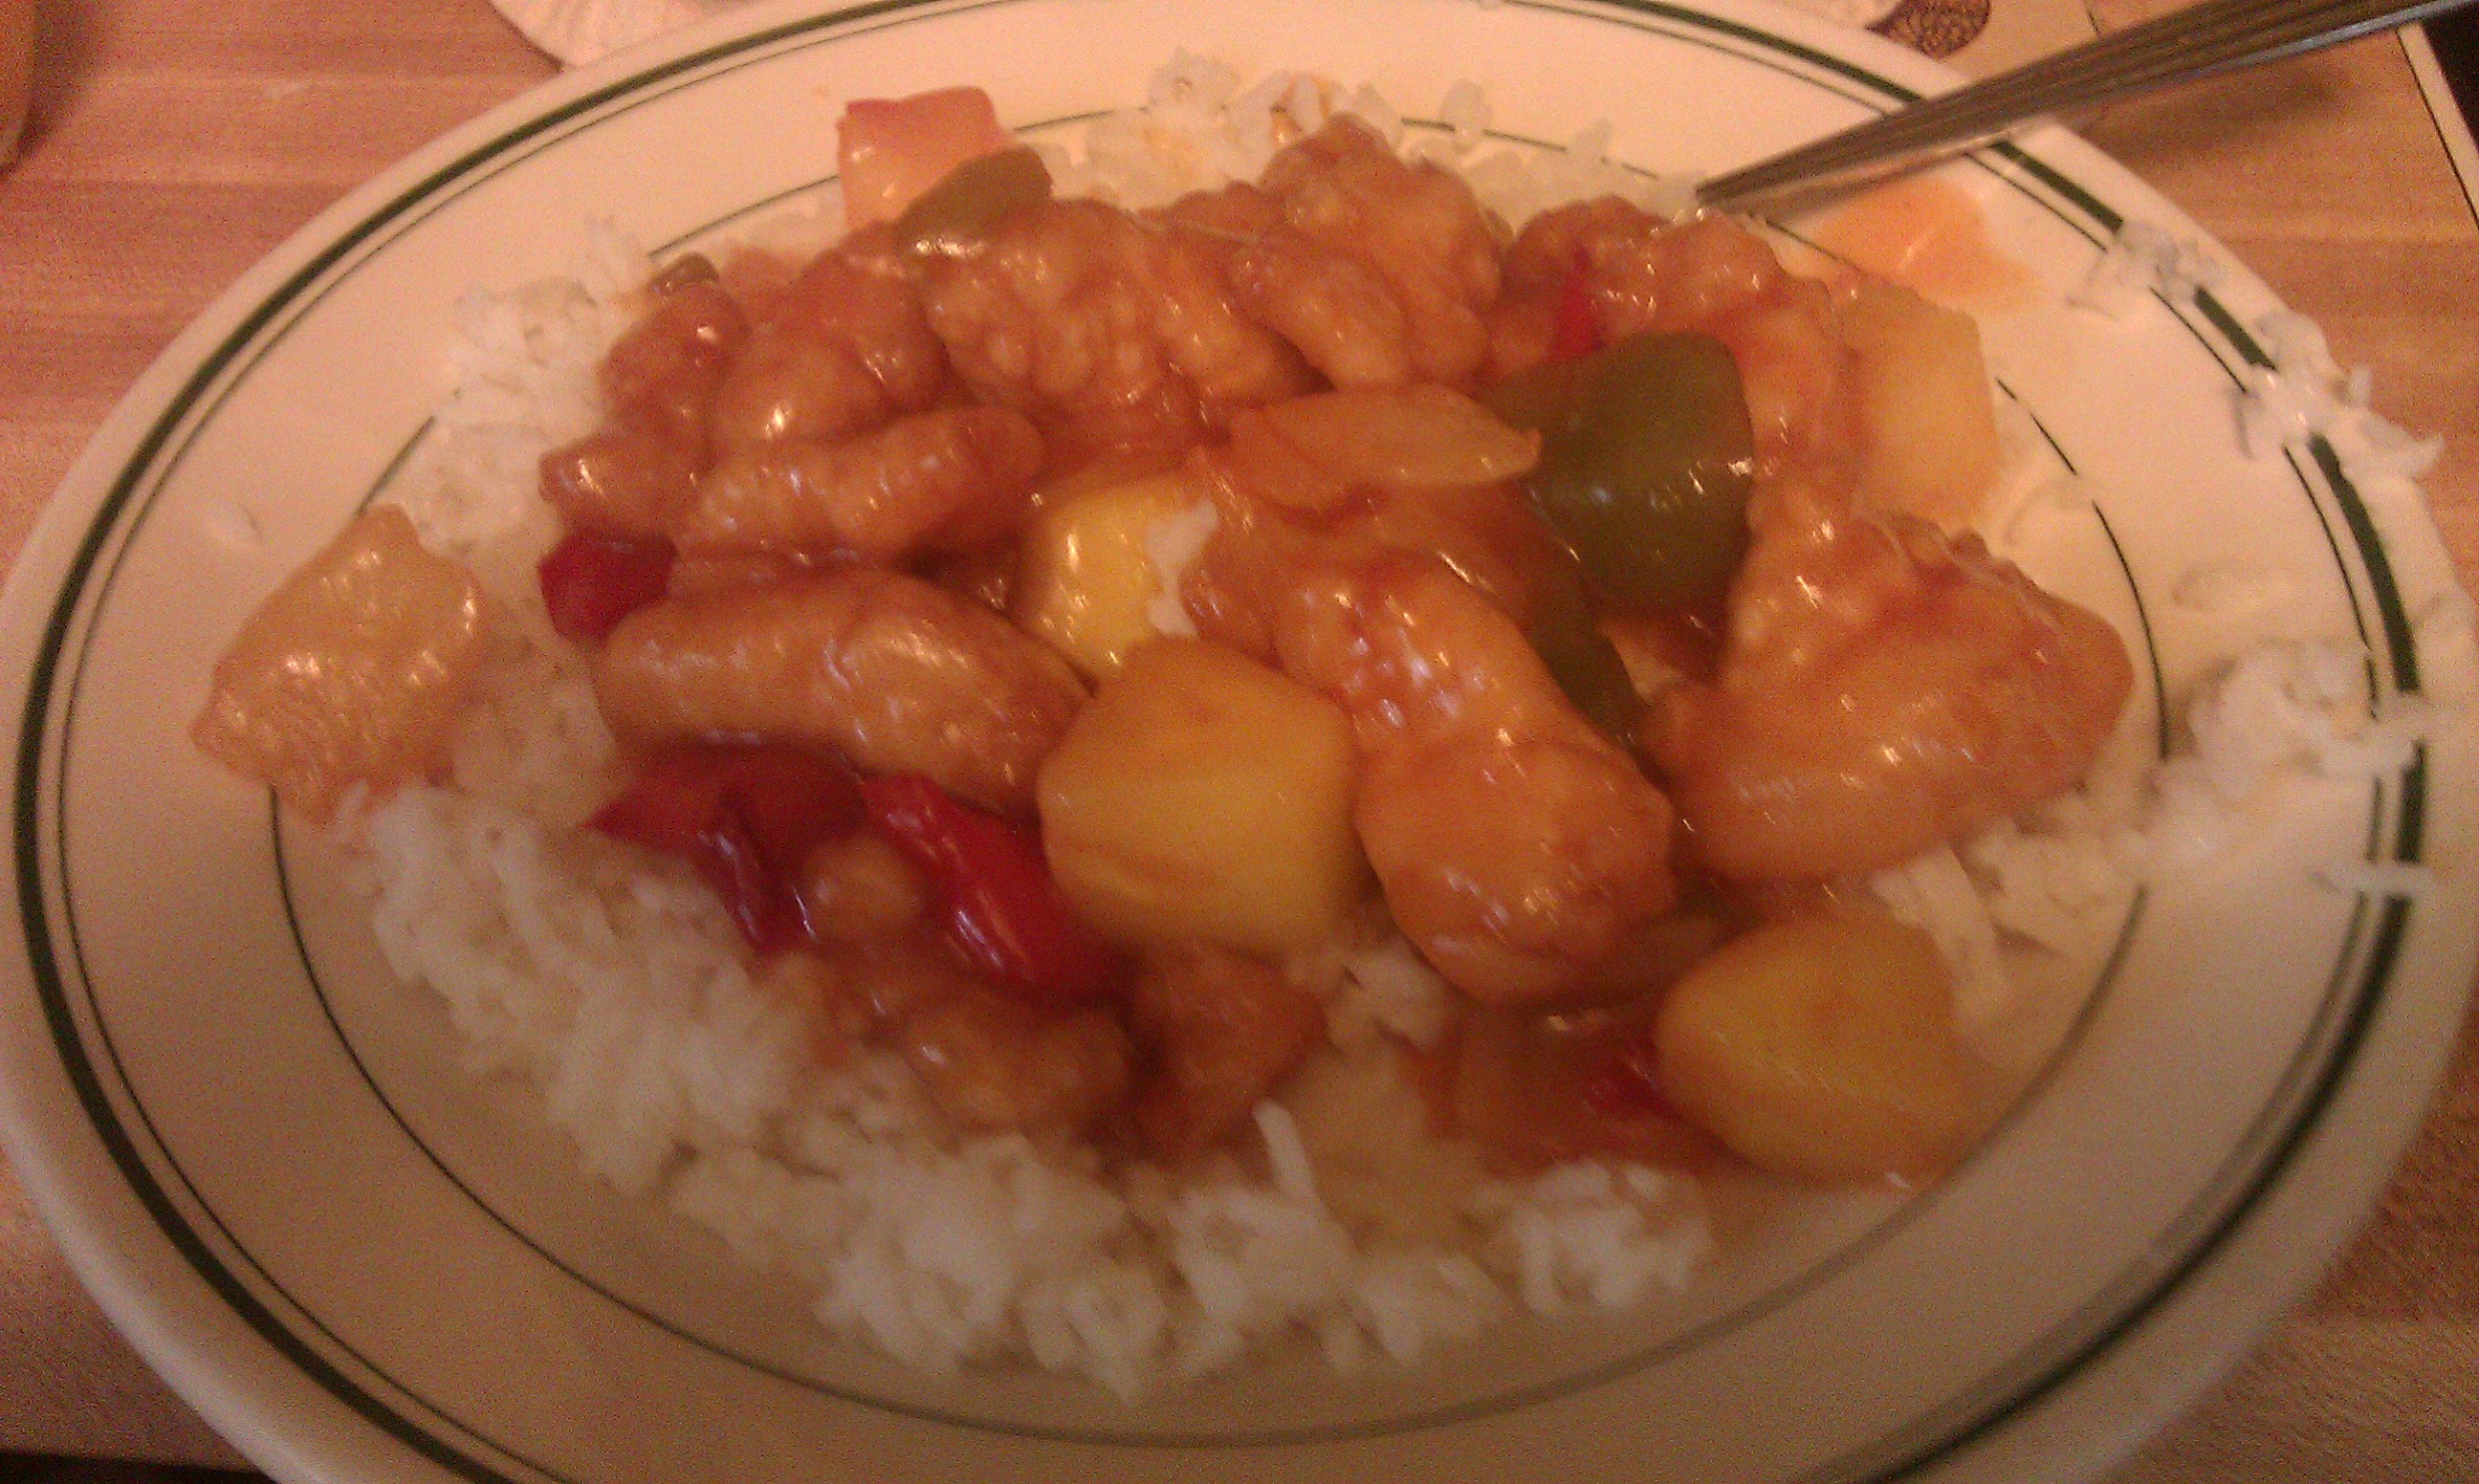 https://foodloader.net/t0xik_2012-05-10_P.F._Changs_Sweet_and_Sour_Chicken.jpg